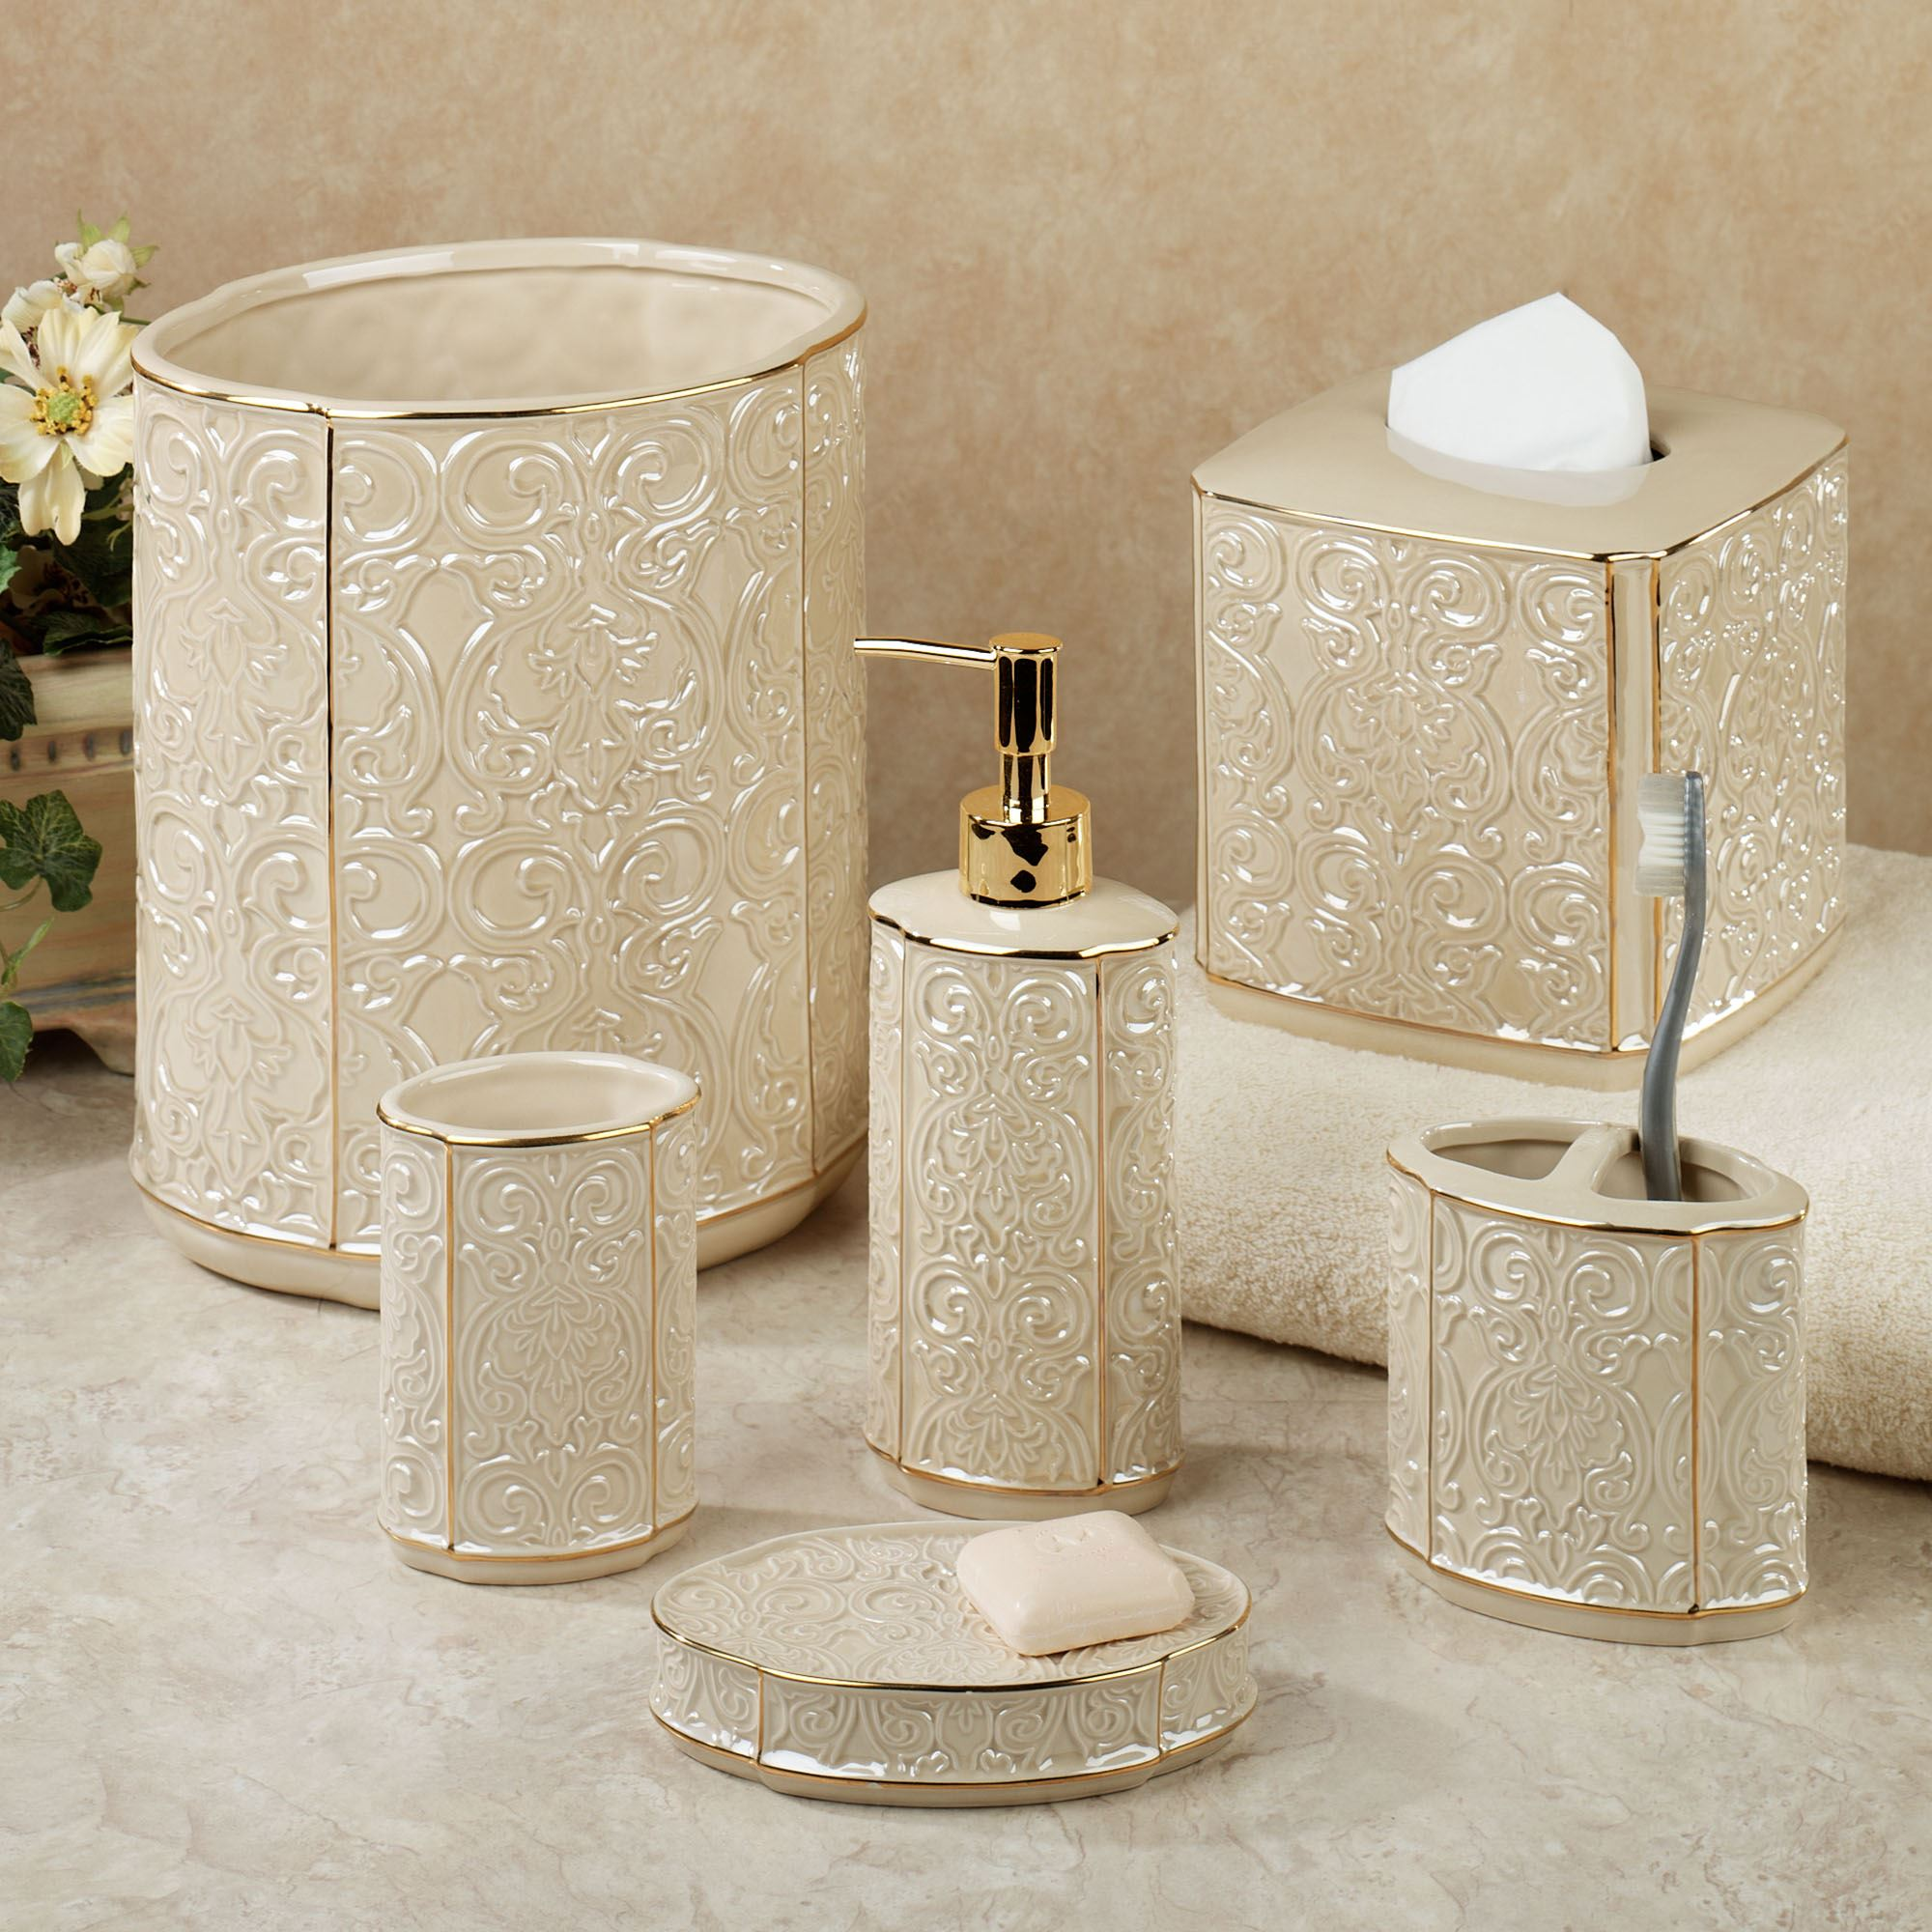 Furla cream damask ceramic bath accessories for Bathroom pieces